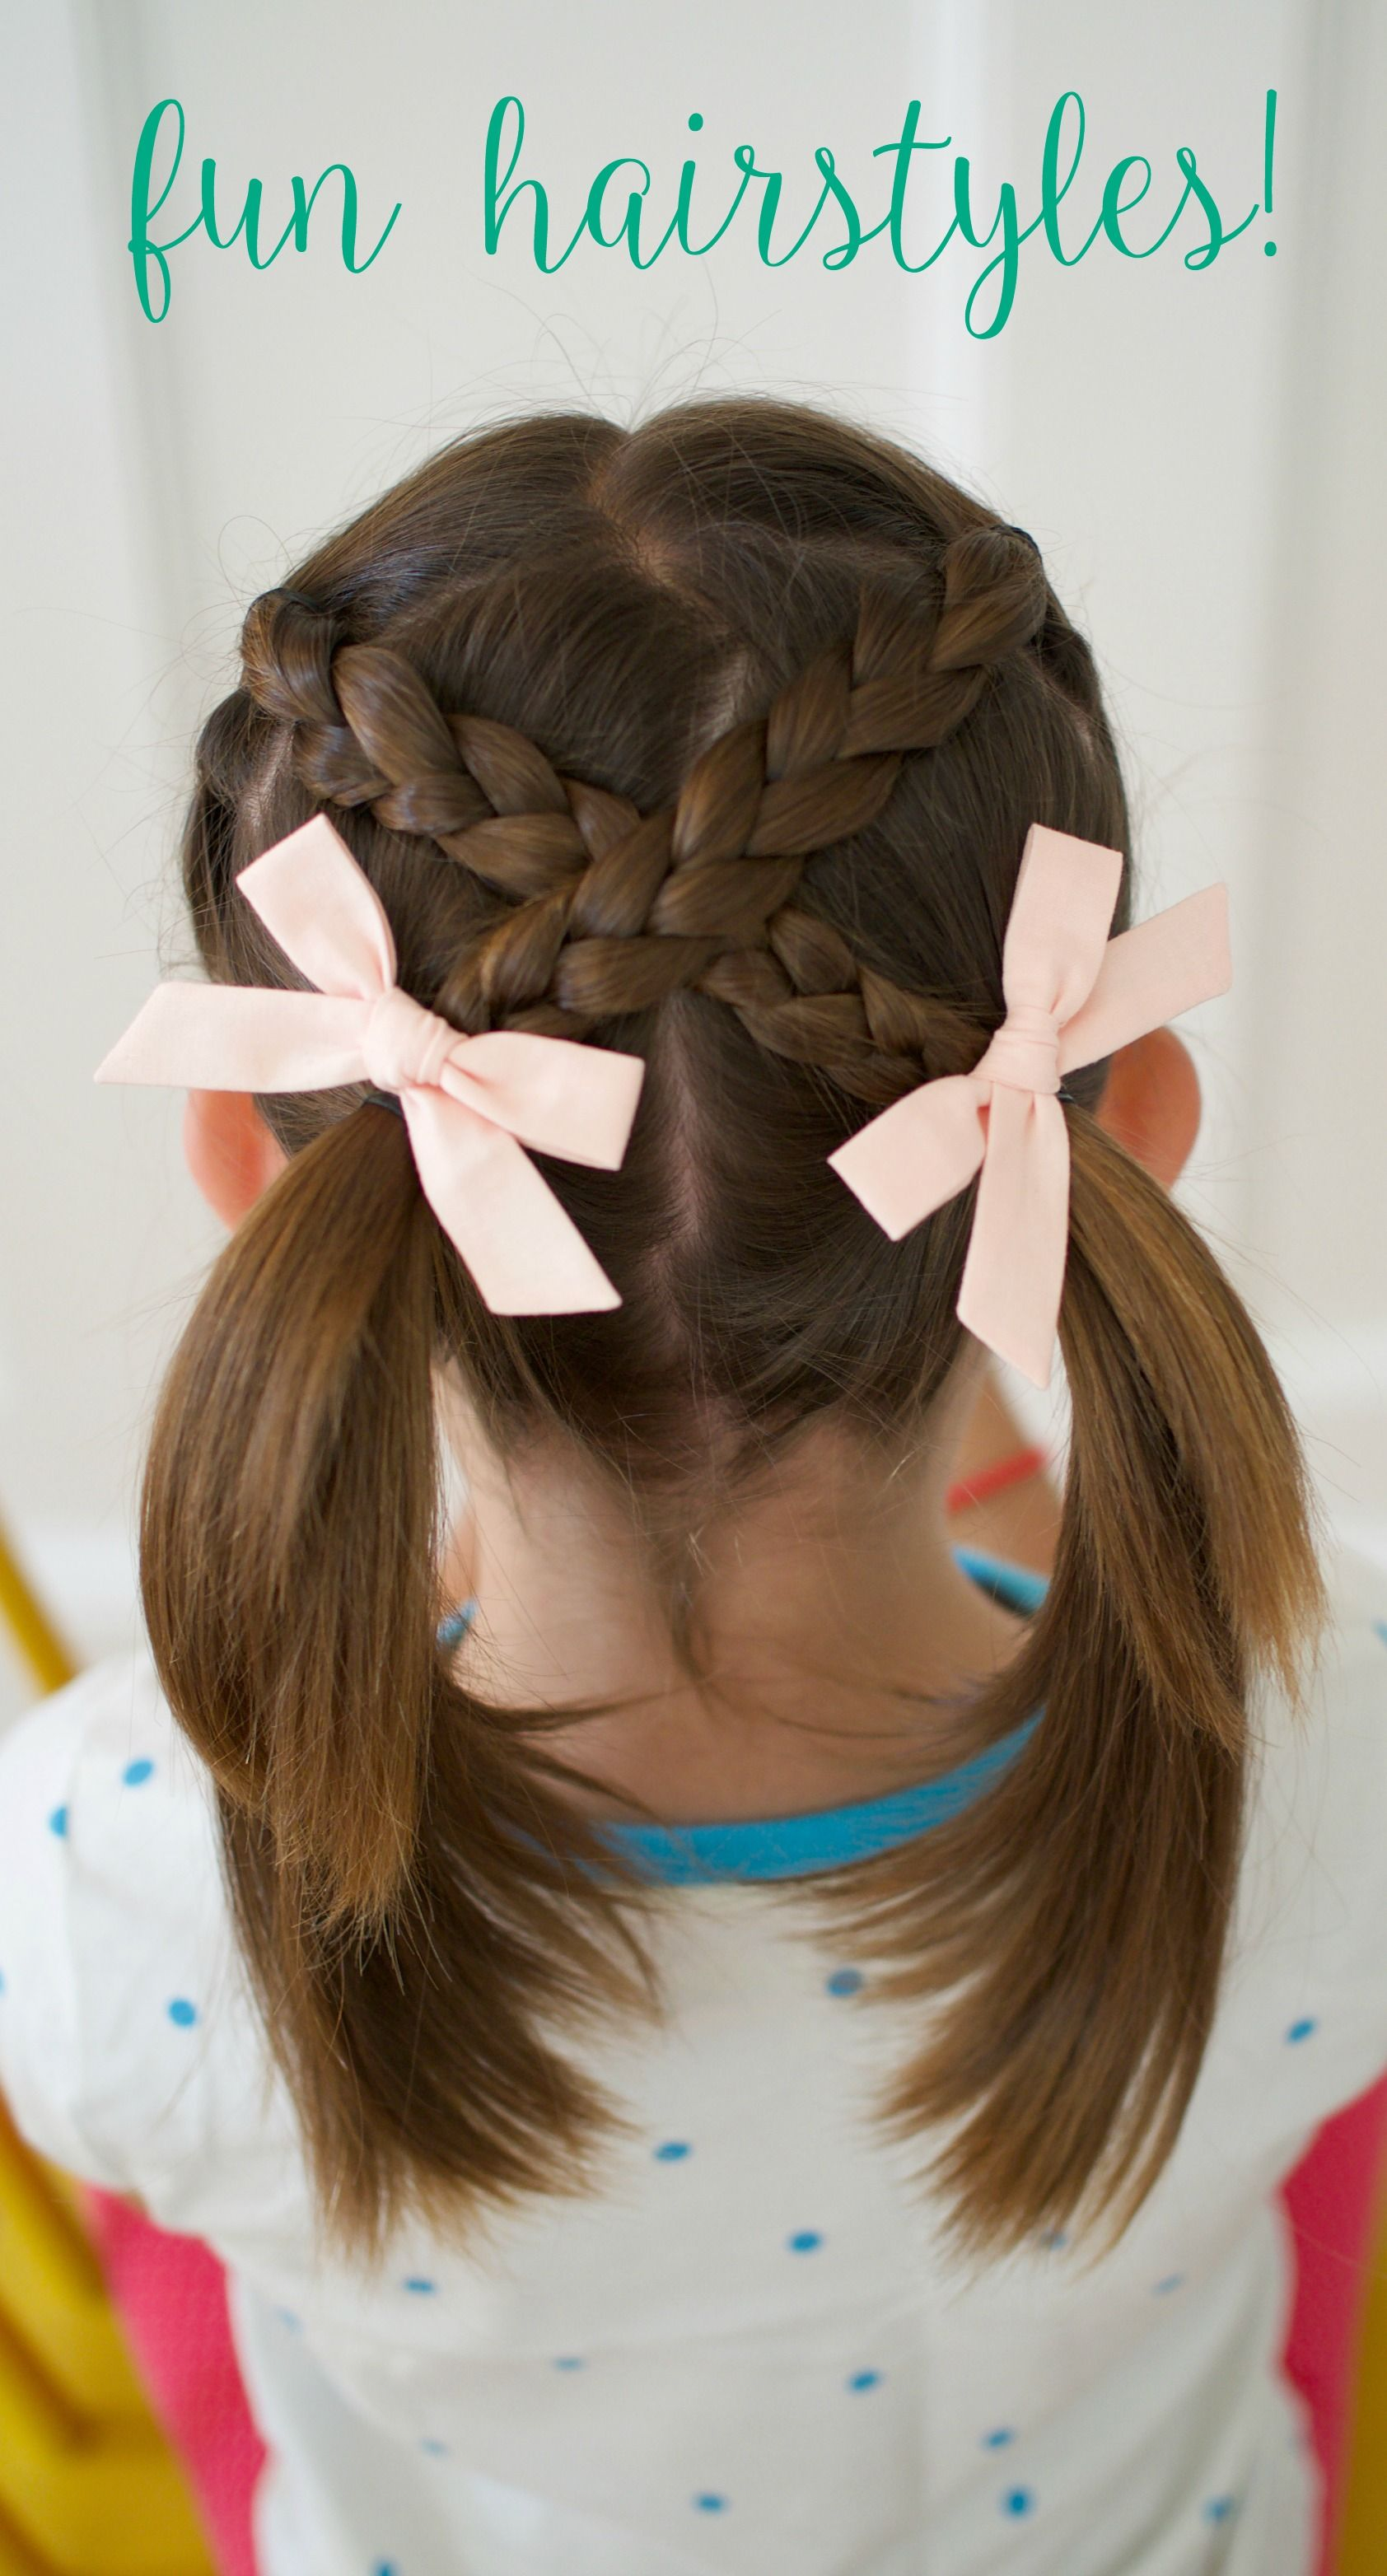 Very Easy Hair Styles for Girls: From Toddlers to School Age  Click here for step by step directions for 6 easy styles for girls hair, short hair styles, best bows, cool braid hairstyles, Wunderkin bows, #wunderkindred